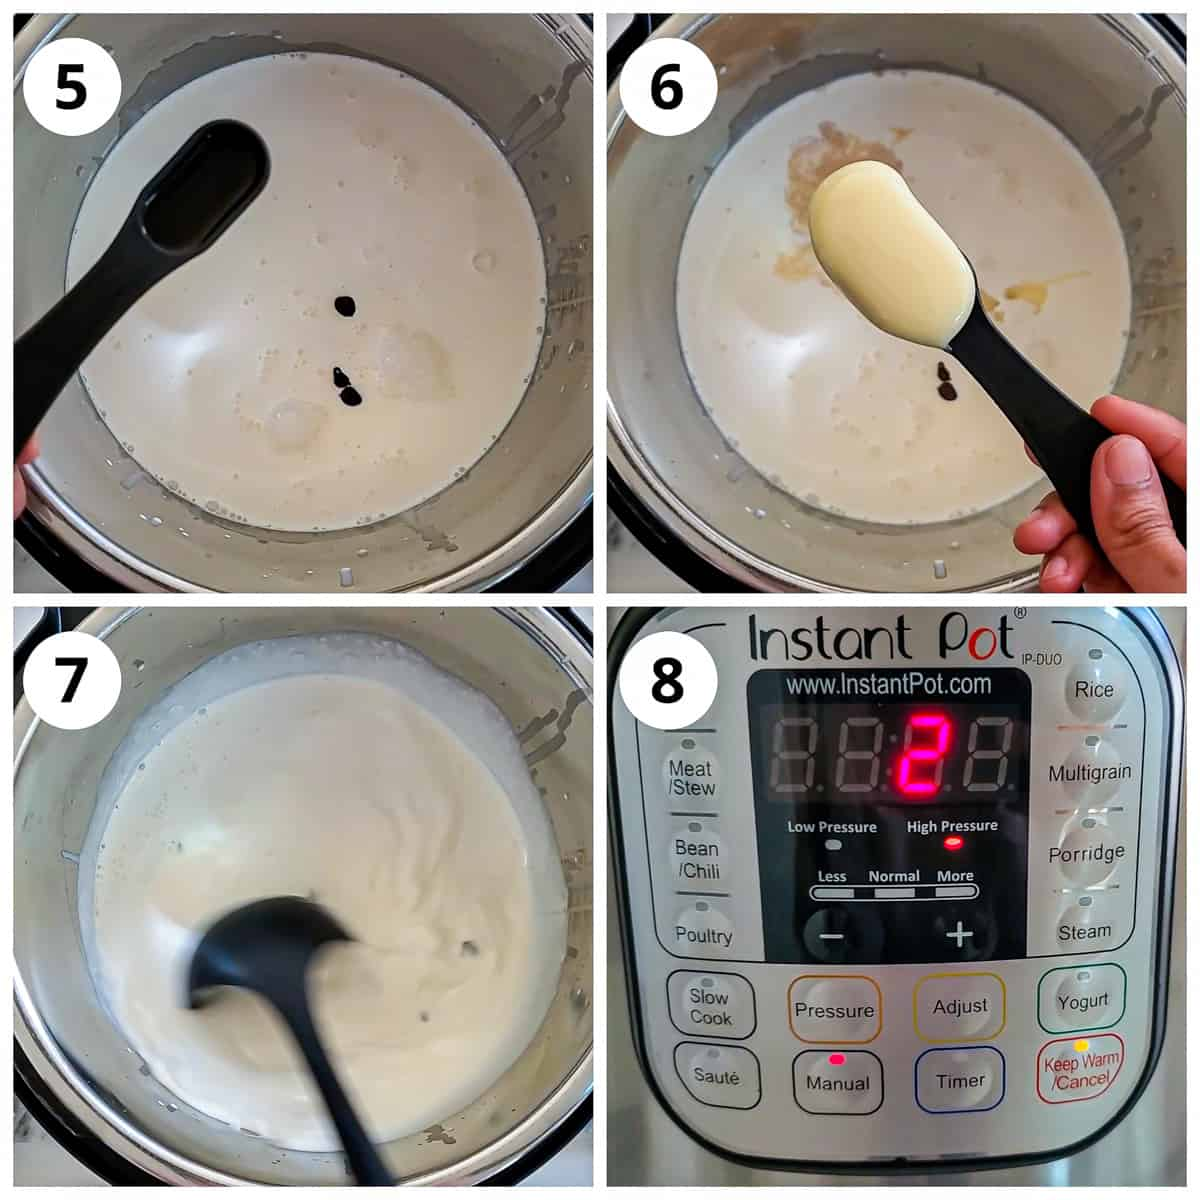 Steps for adding vanilla and condensed milk, mixing and pressure cooking to make hot chocolate